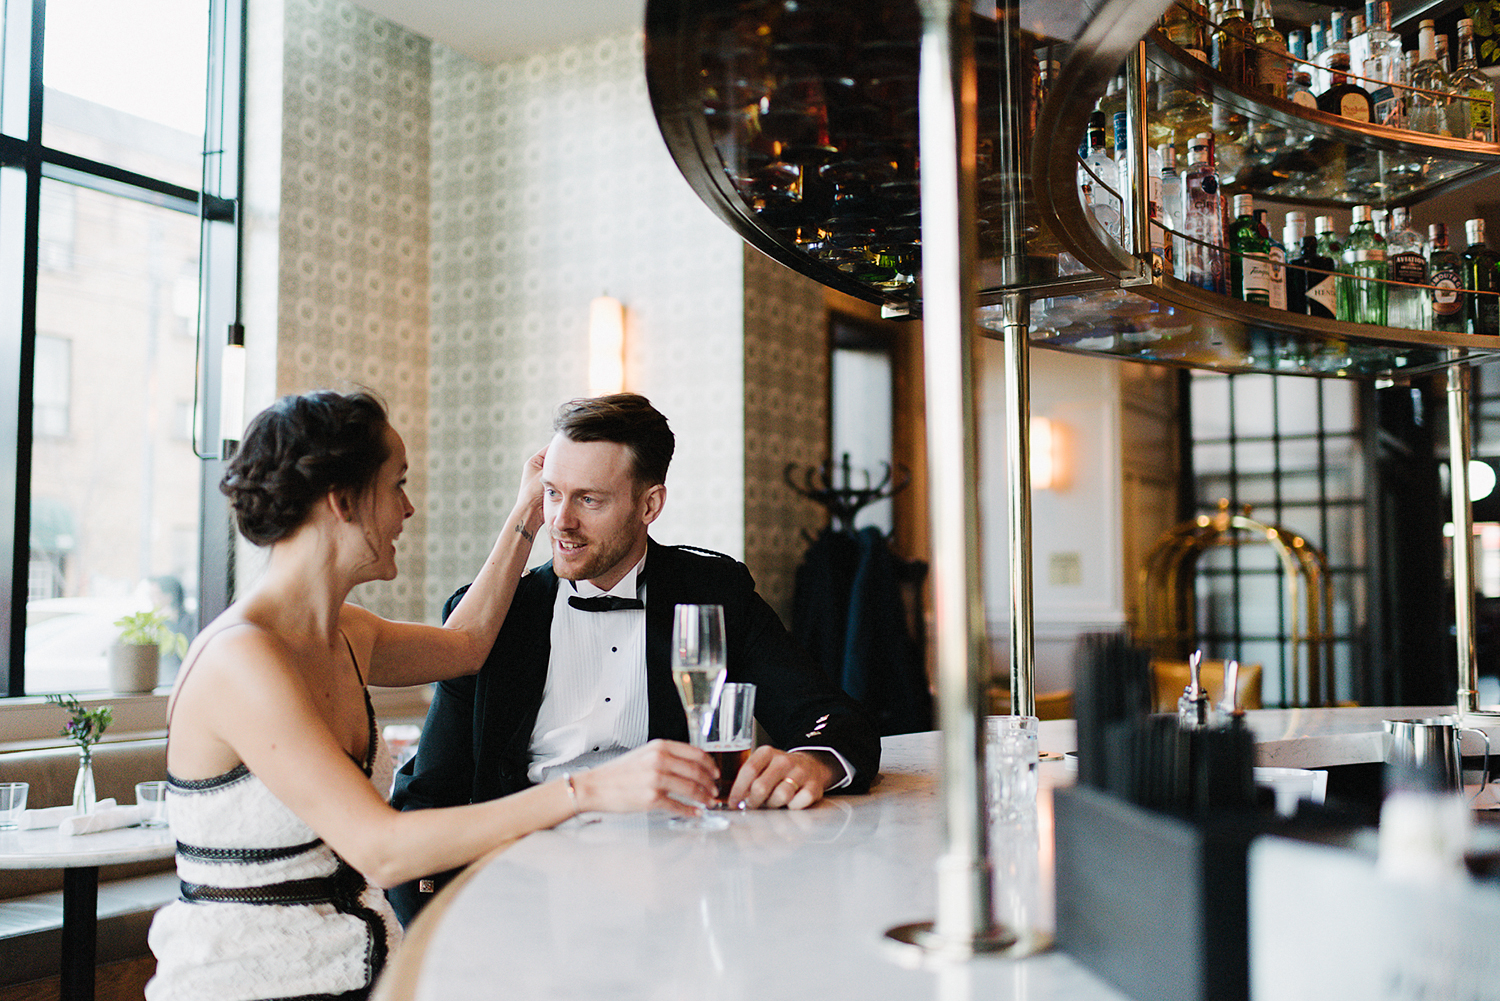 elopement-wedding-toronto-wedding-photographer-ryanne-hollies-photography-how-to-elope-in-toronto-portrait-of-couple-editorial-the-broadview-hotel-room-floor-details-vintage-modern-cafe-lobby-cocktails-bride-and-groom-real-moments.jpg